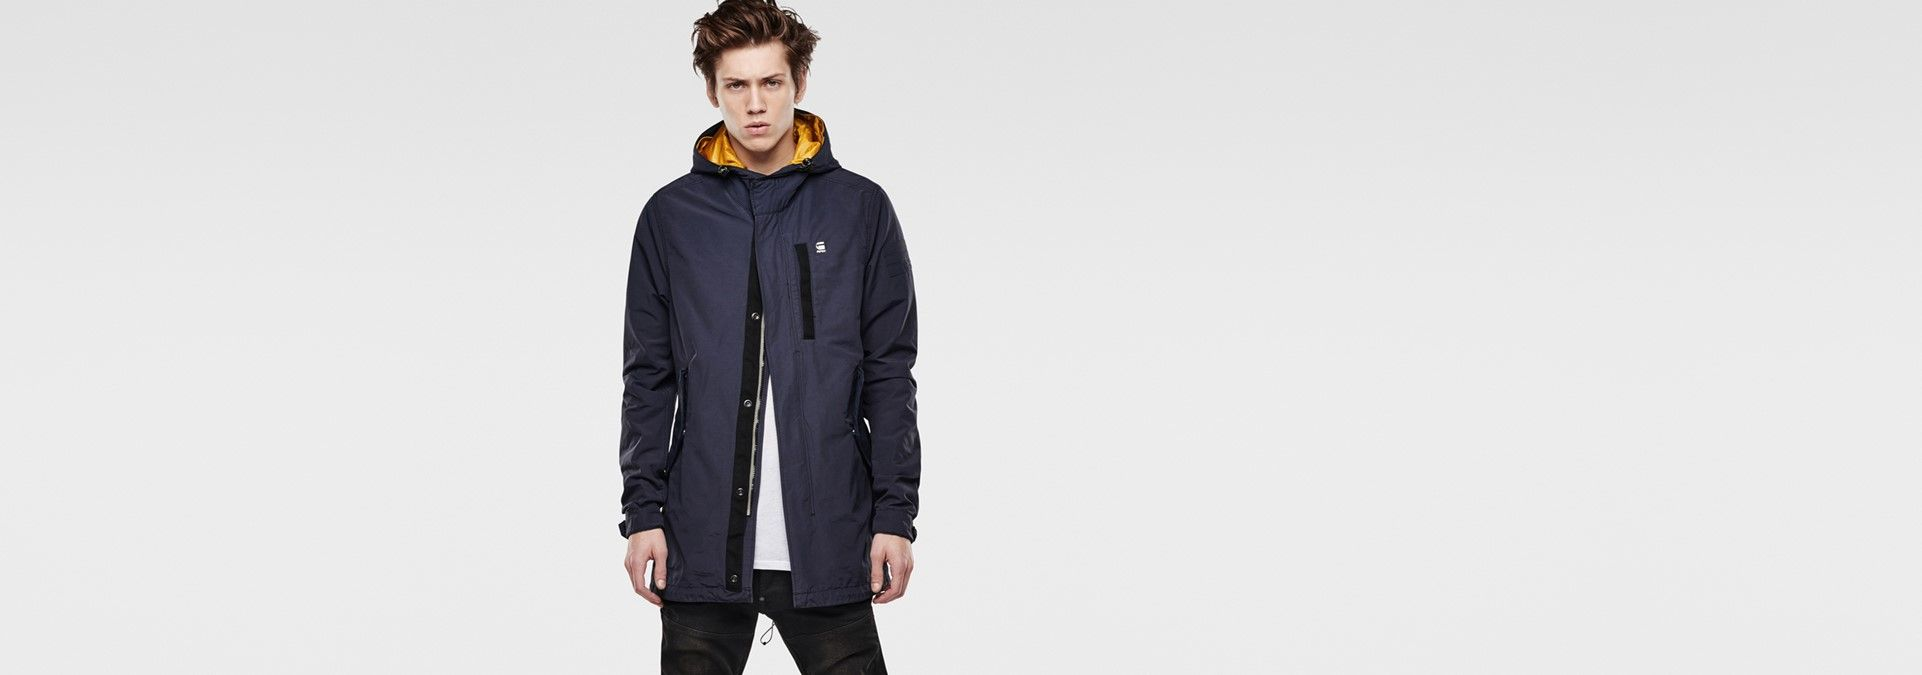 G-Star RAW | Manner | Jacken | Jacor Hooded Parka , Indigo